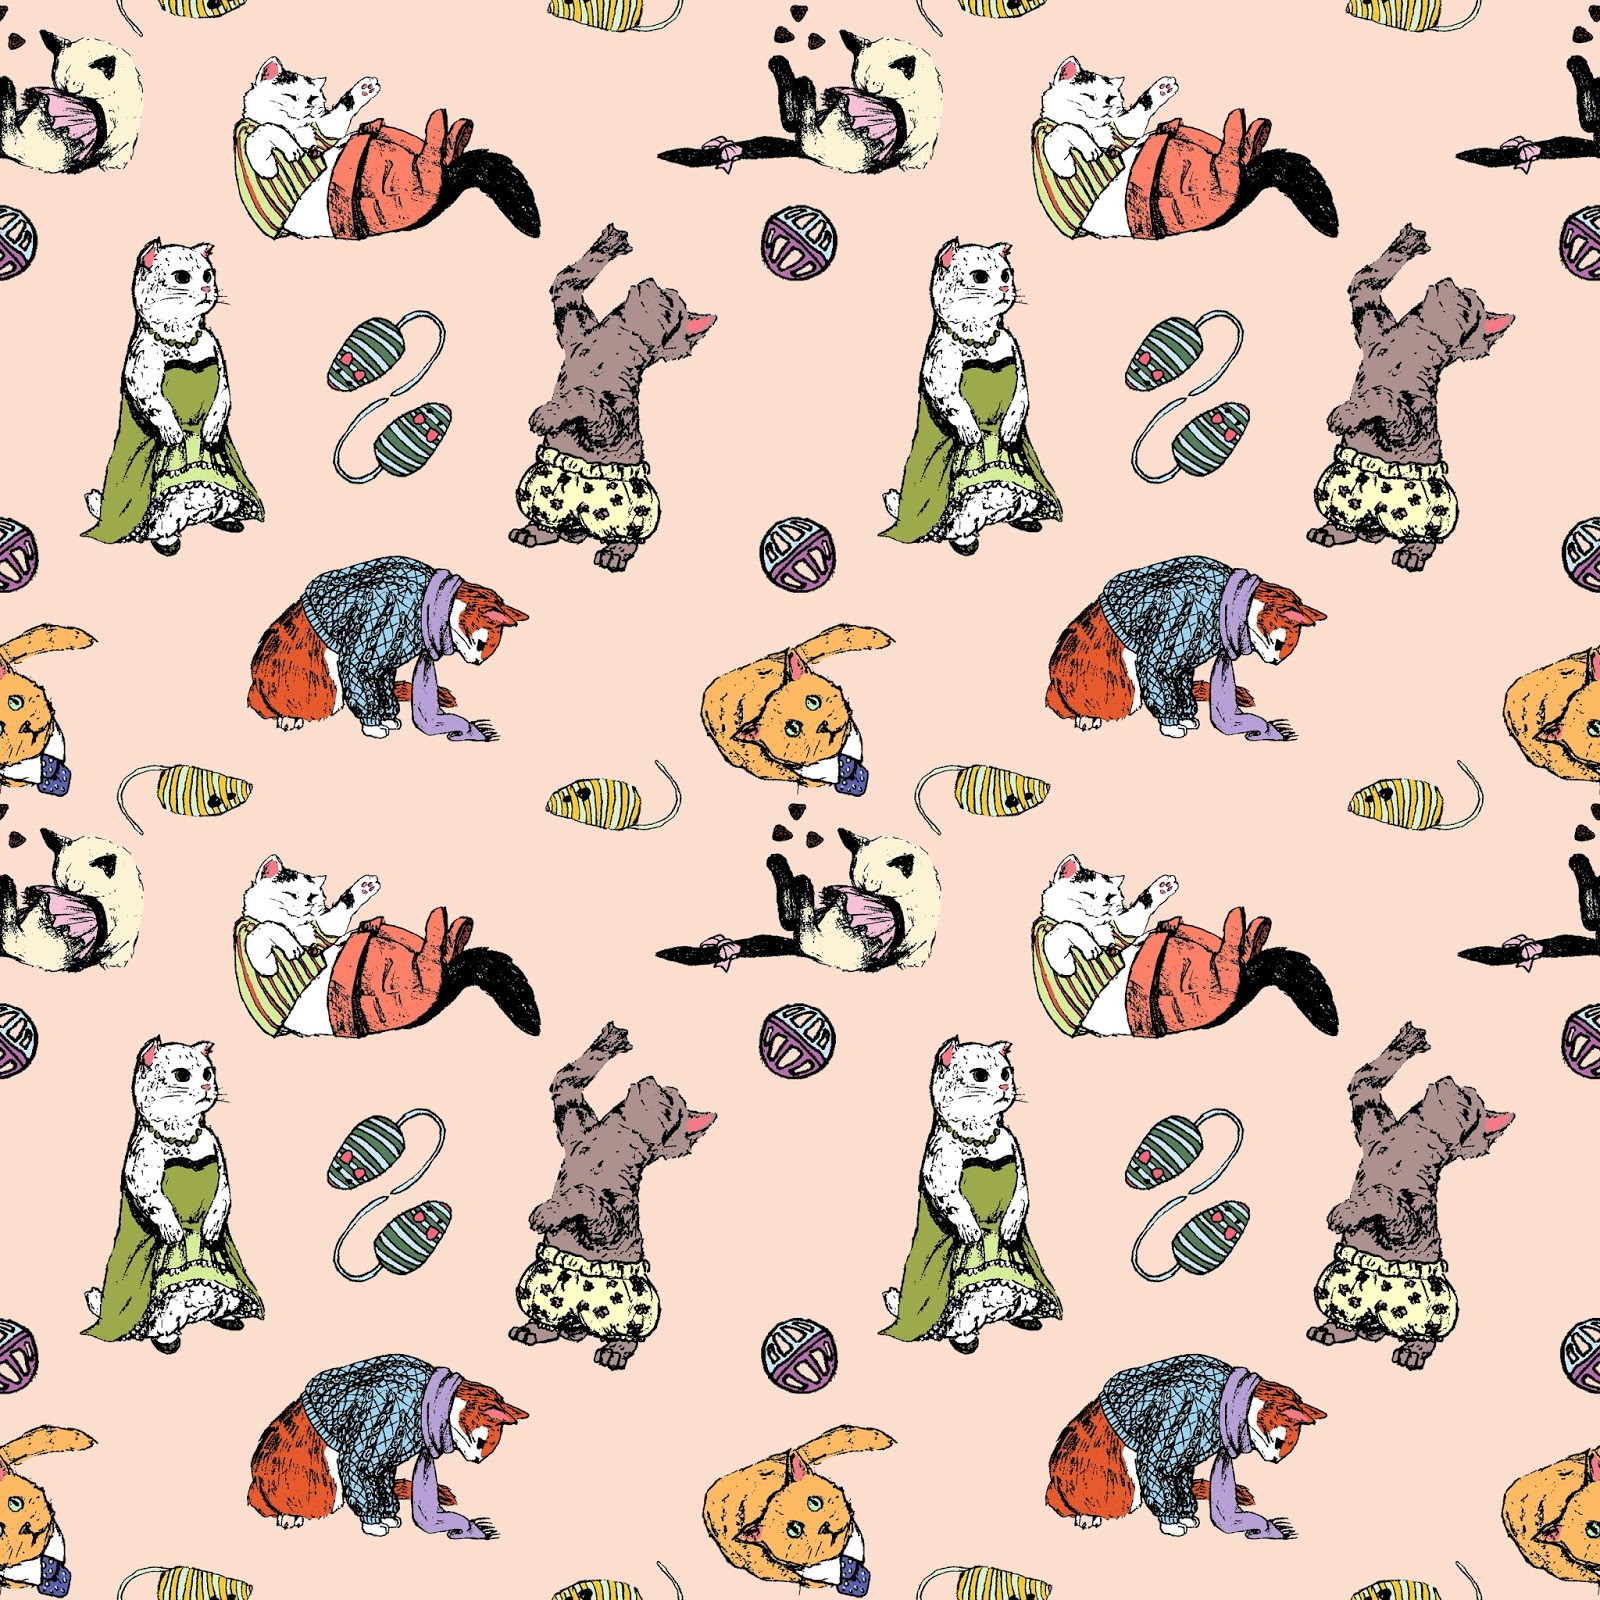 Tumblr Cat Pattern Now, i love drawing cats